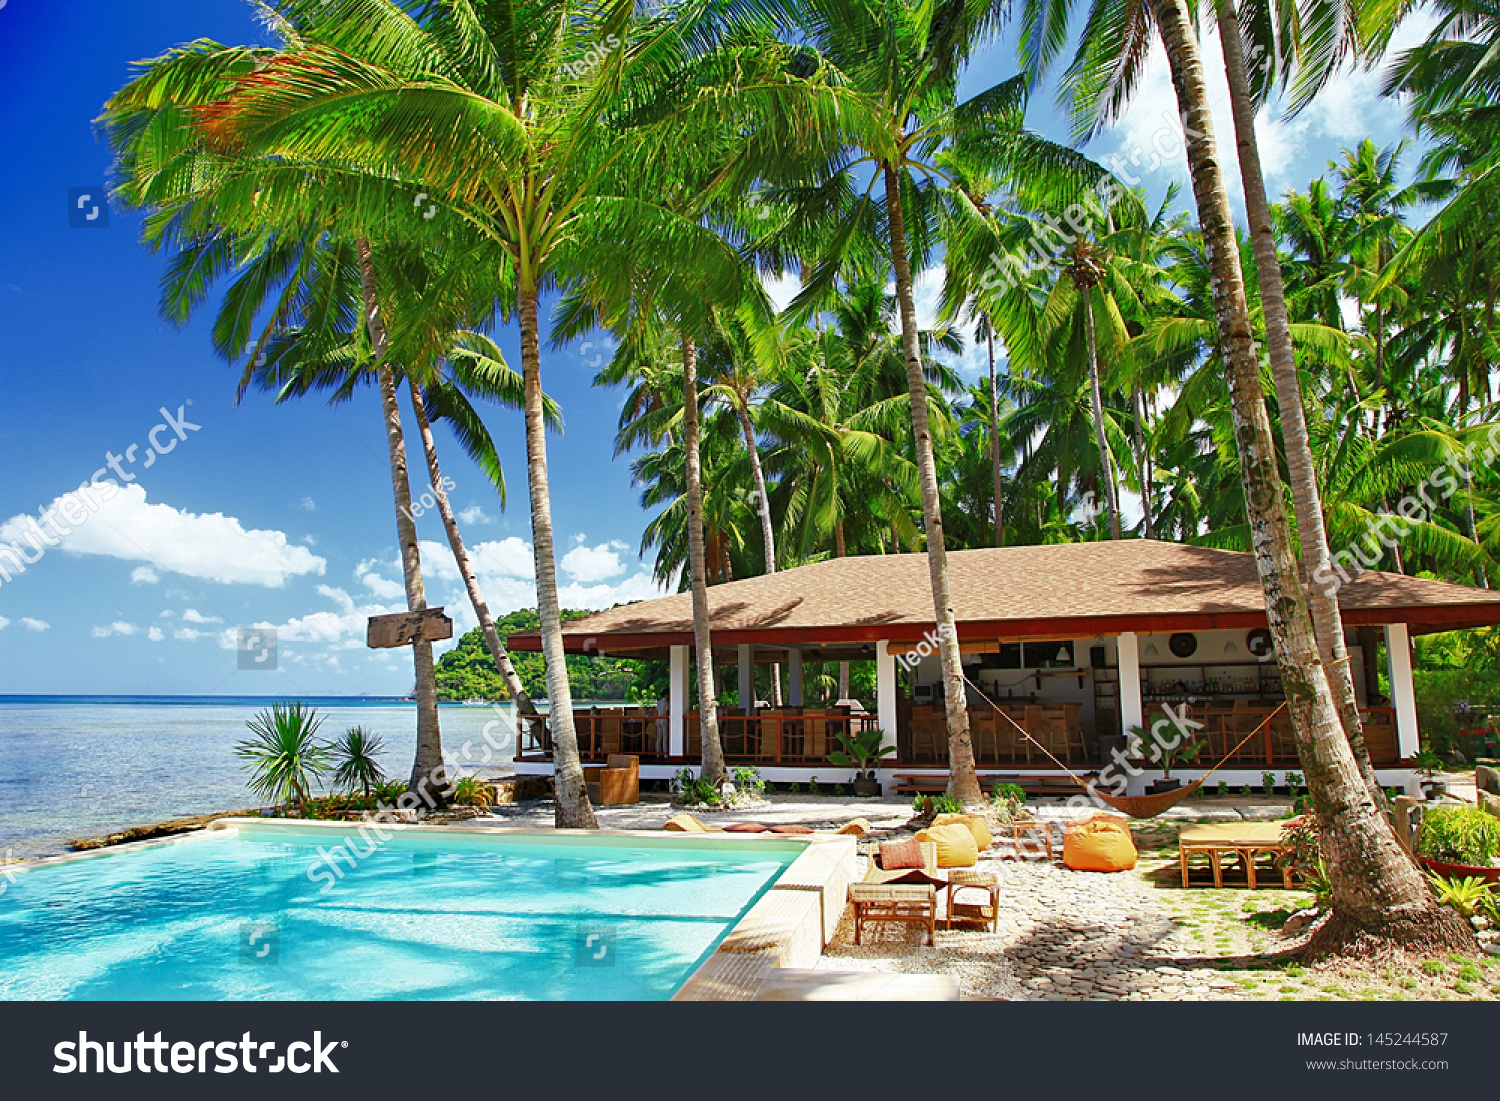 Tropical Holidays Luxury Resort On Beach Stock Photo